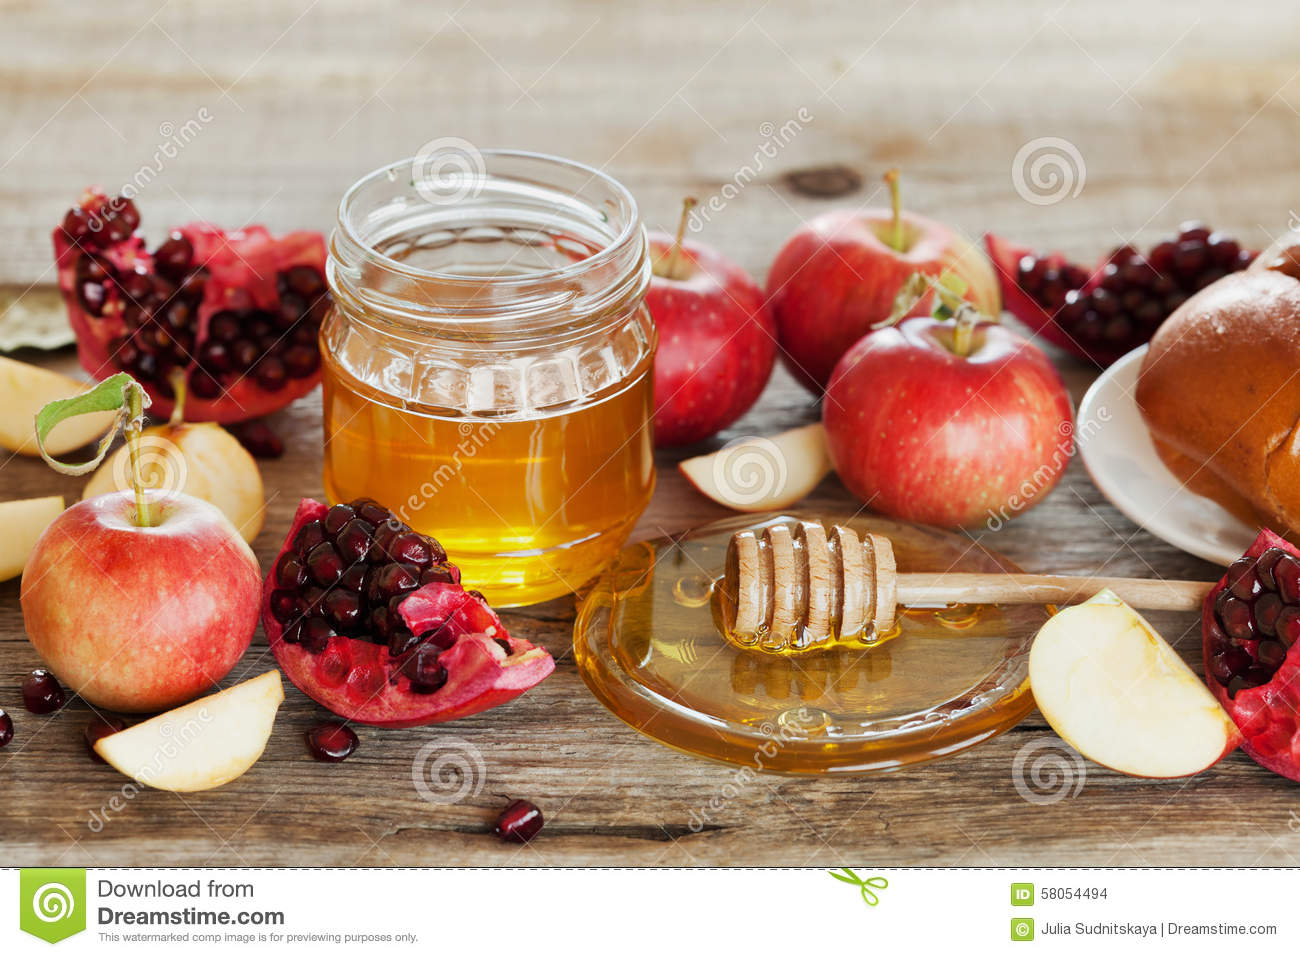 Honey, apple, pomegranate and bread hala, table set with traditional food for Jewish New Year Holiday, Rosh Hashana